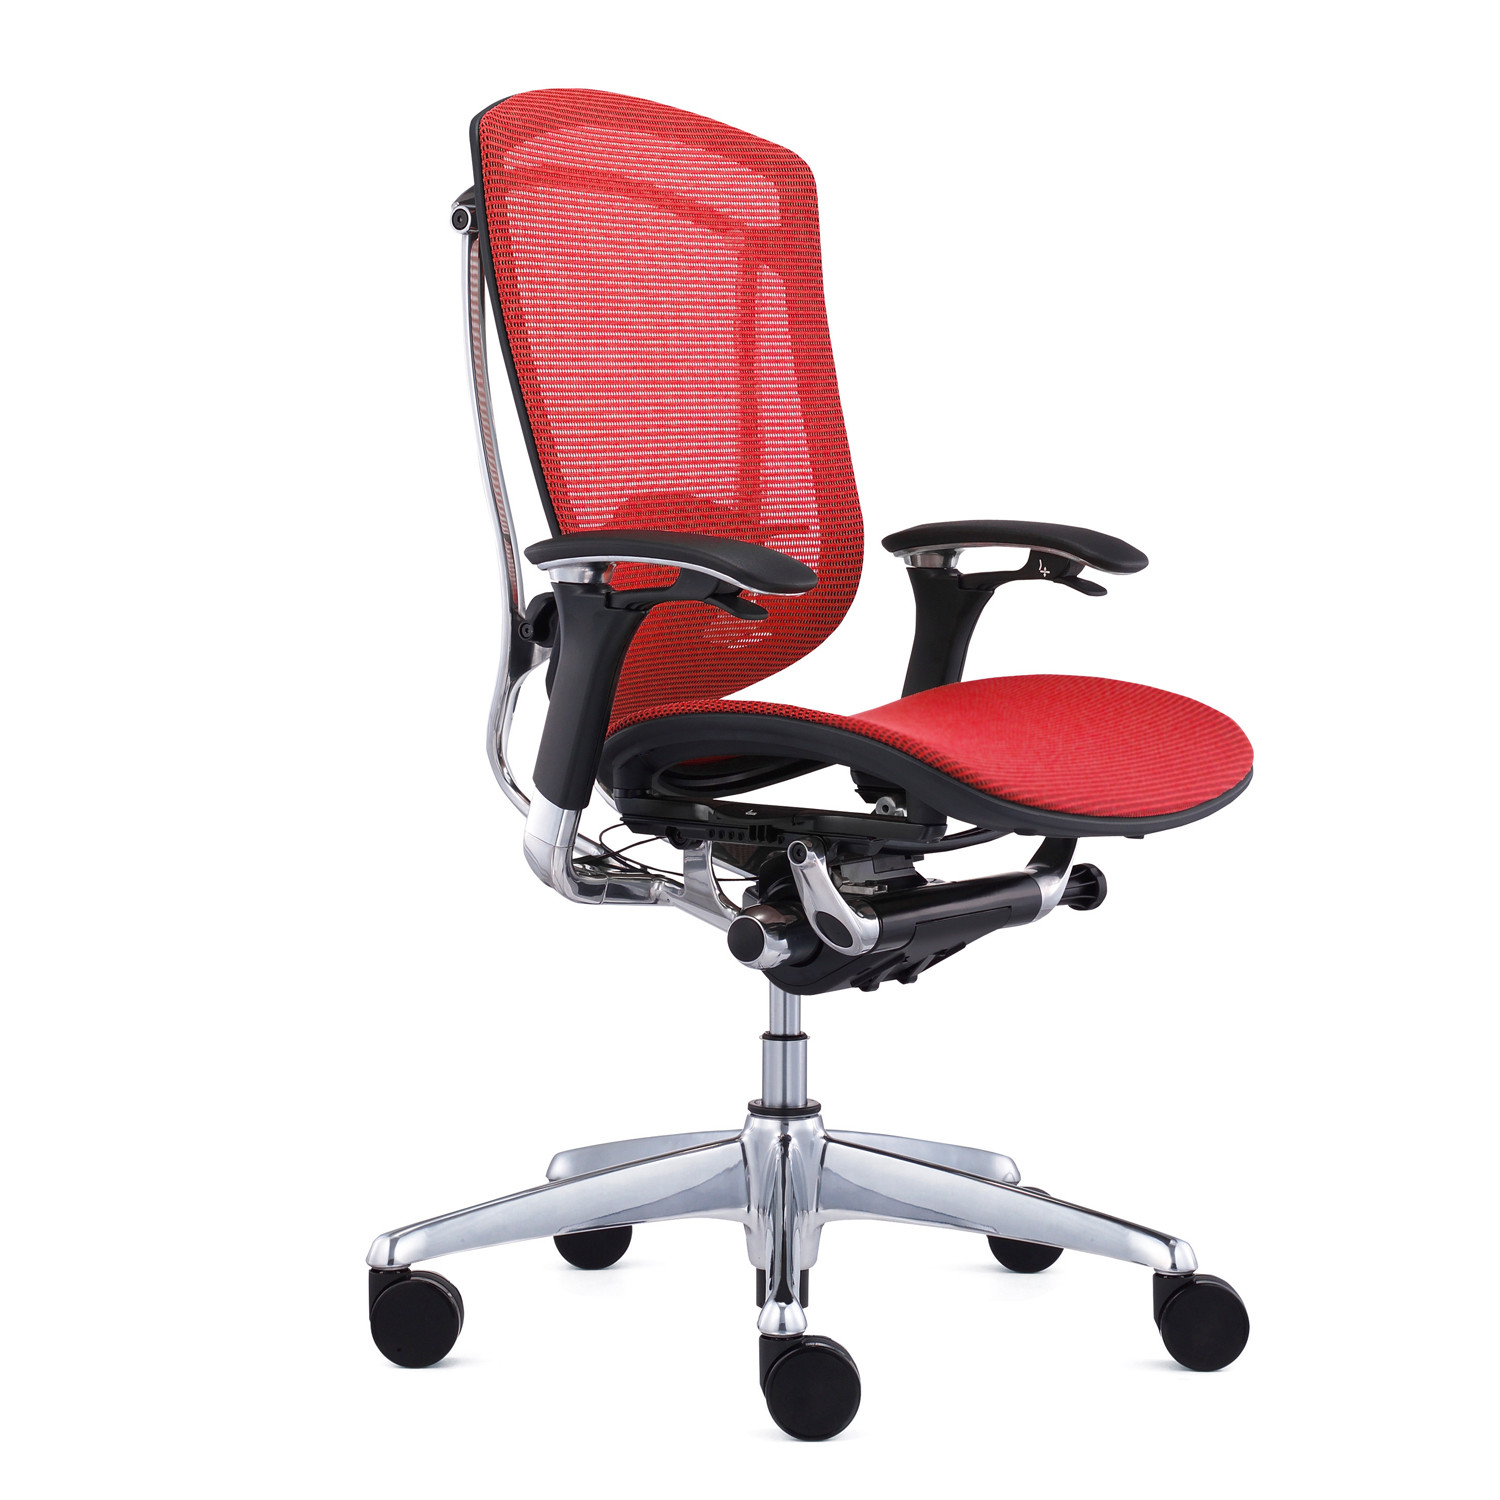 Contessa Chairs Ergonomic Mesh Seating